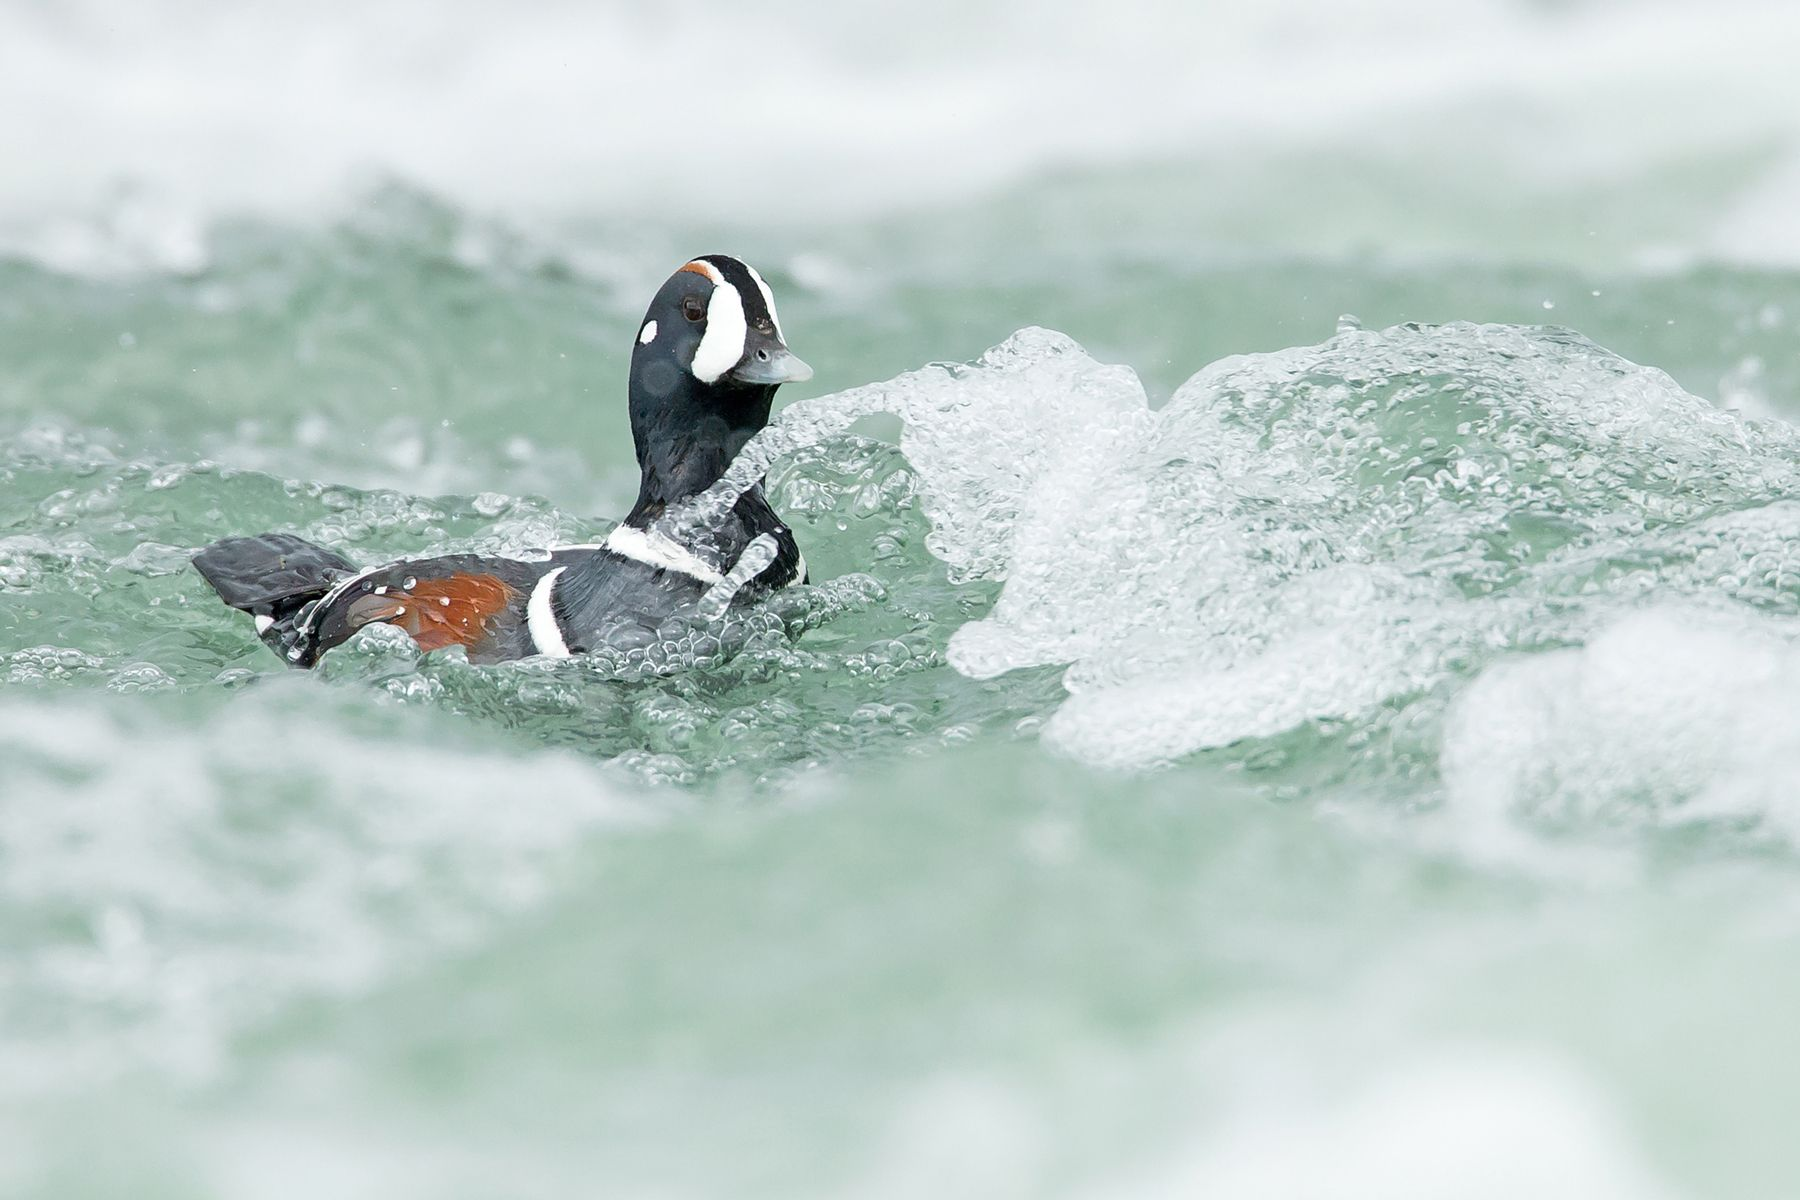 Iceland photography tour: Harlequin Duck by Mike Watson